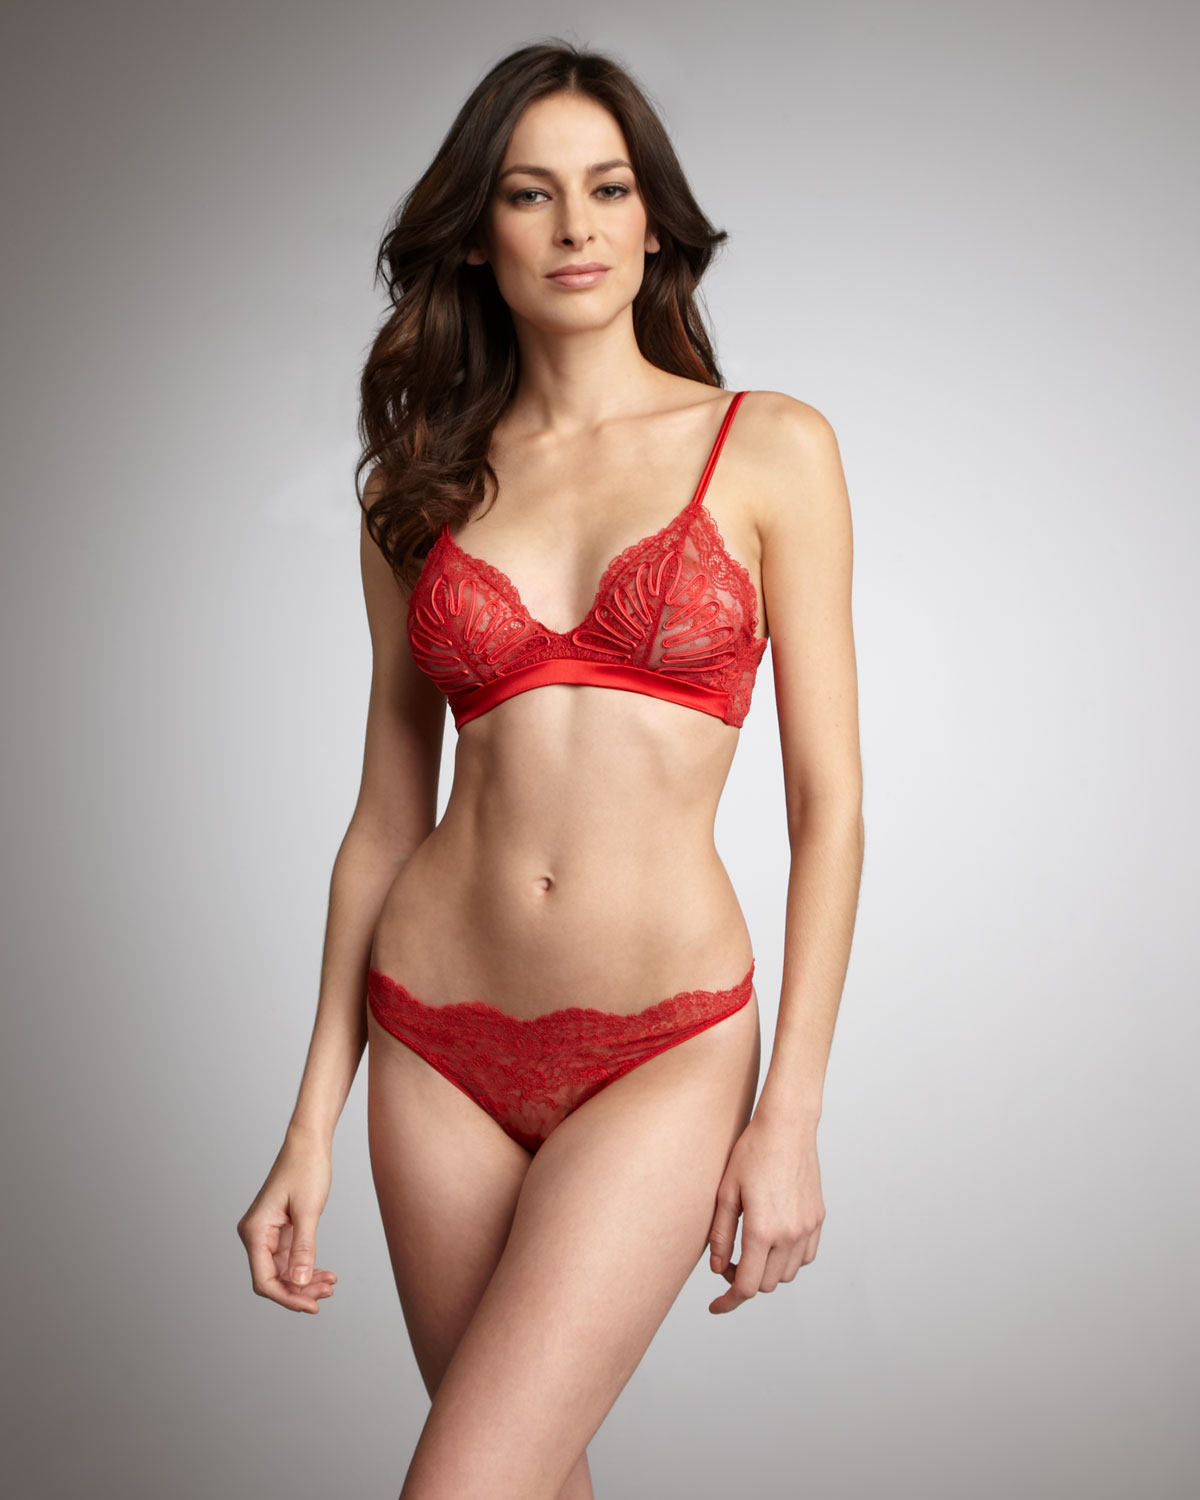 Sandra Orlow Red Lingerie Provocative: http://cumception.com/sandra-orlow-red-lingerie-provocative/